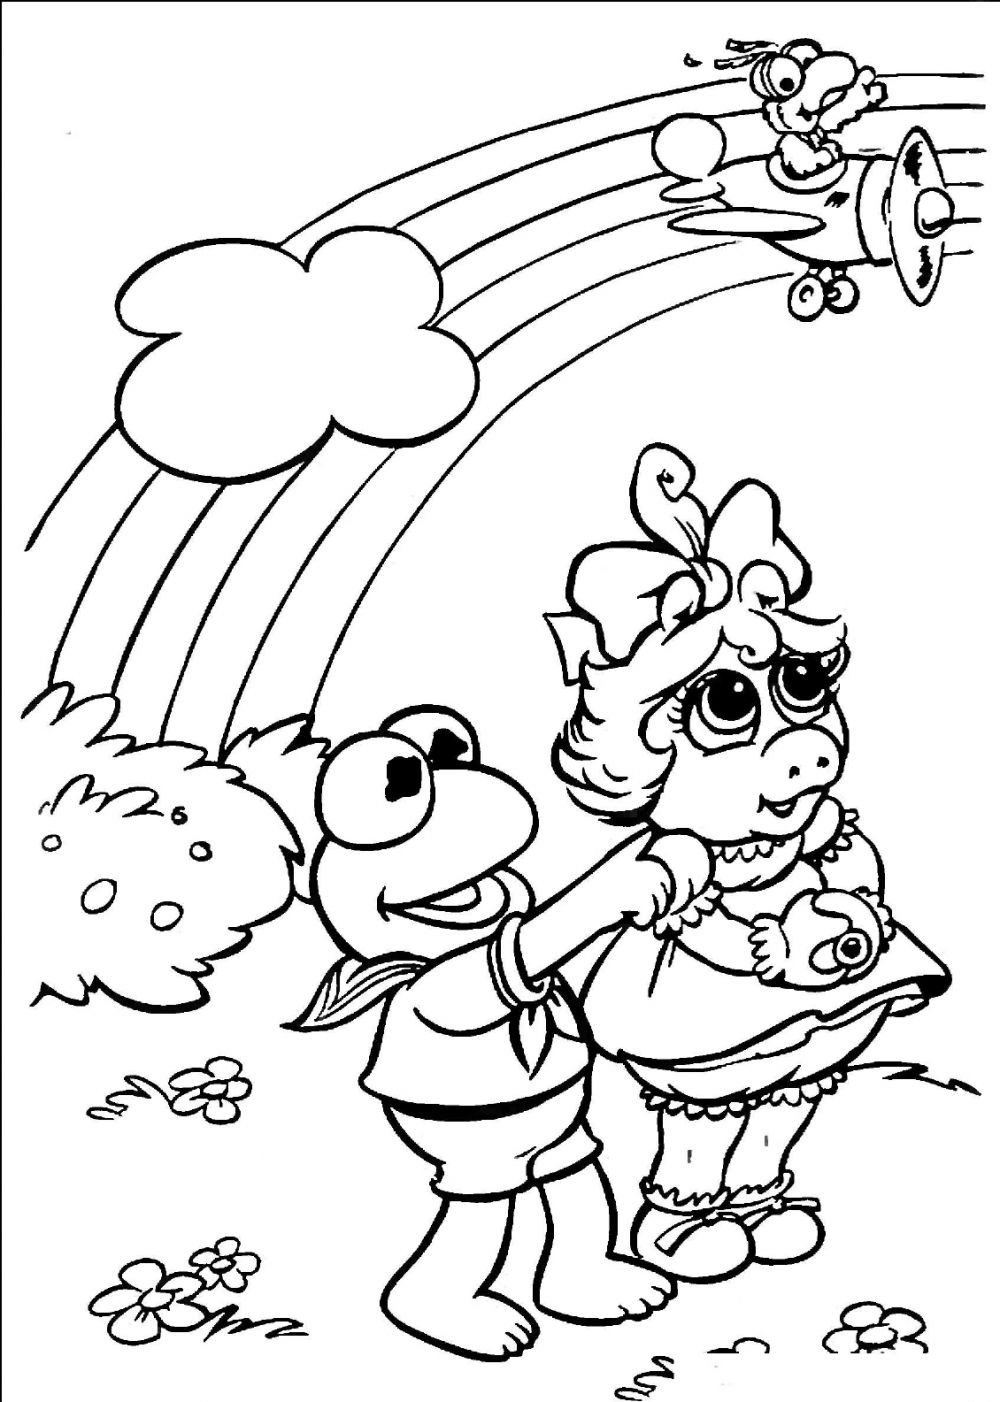 Coloring Pages For Kides  Free Printable Rainbow Coloring Pages For Kids